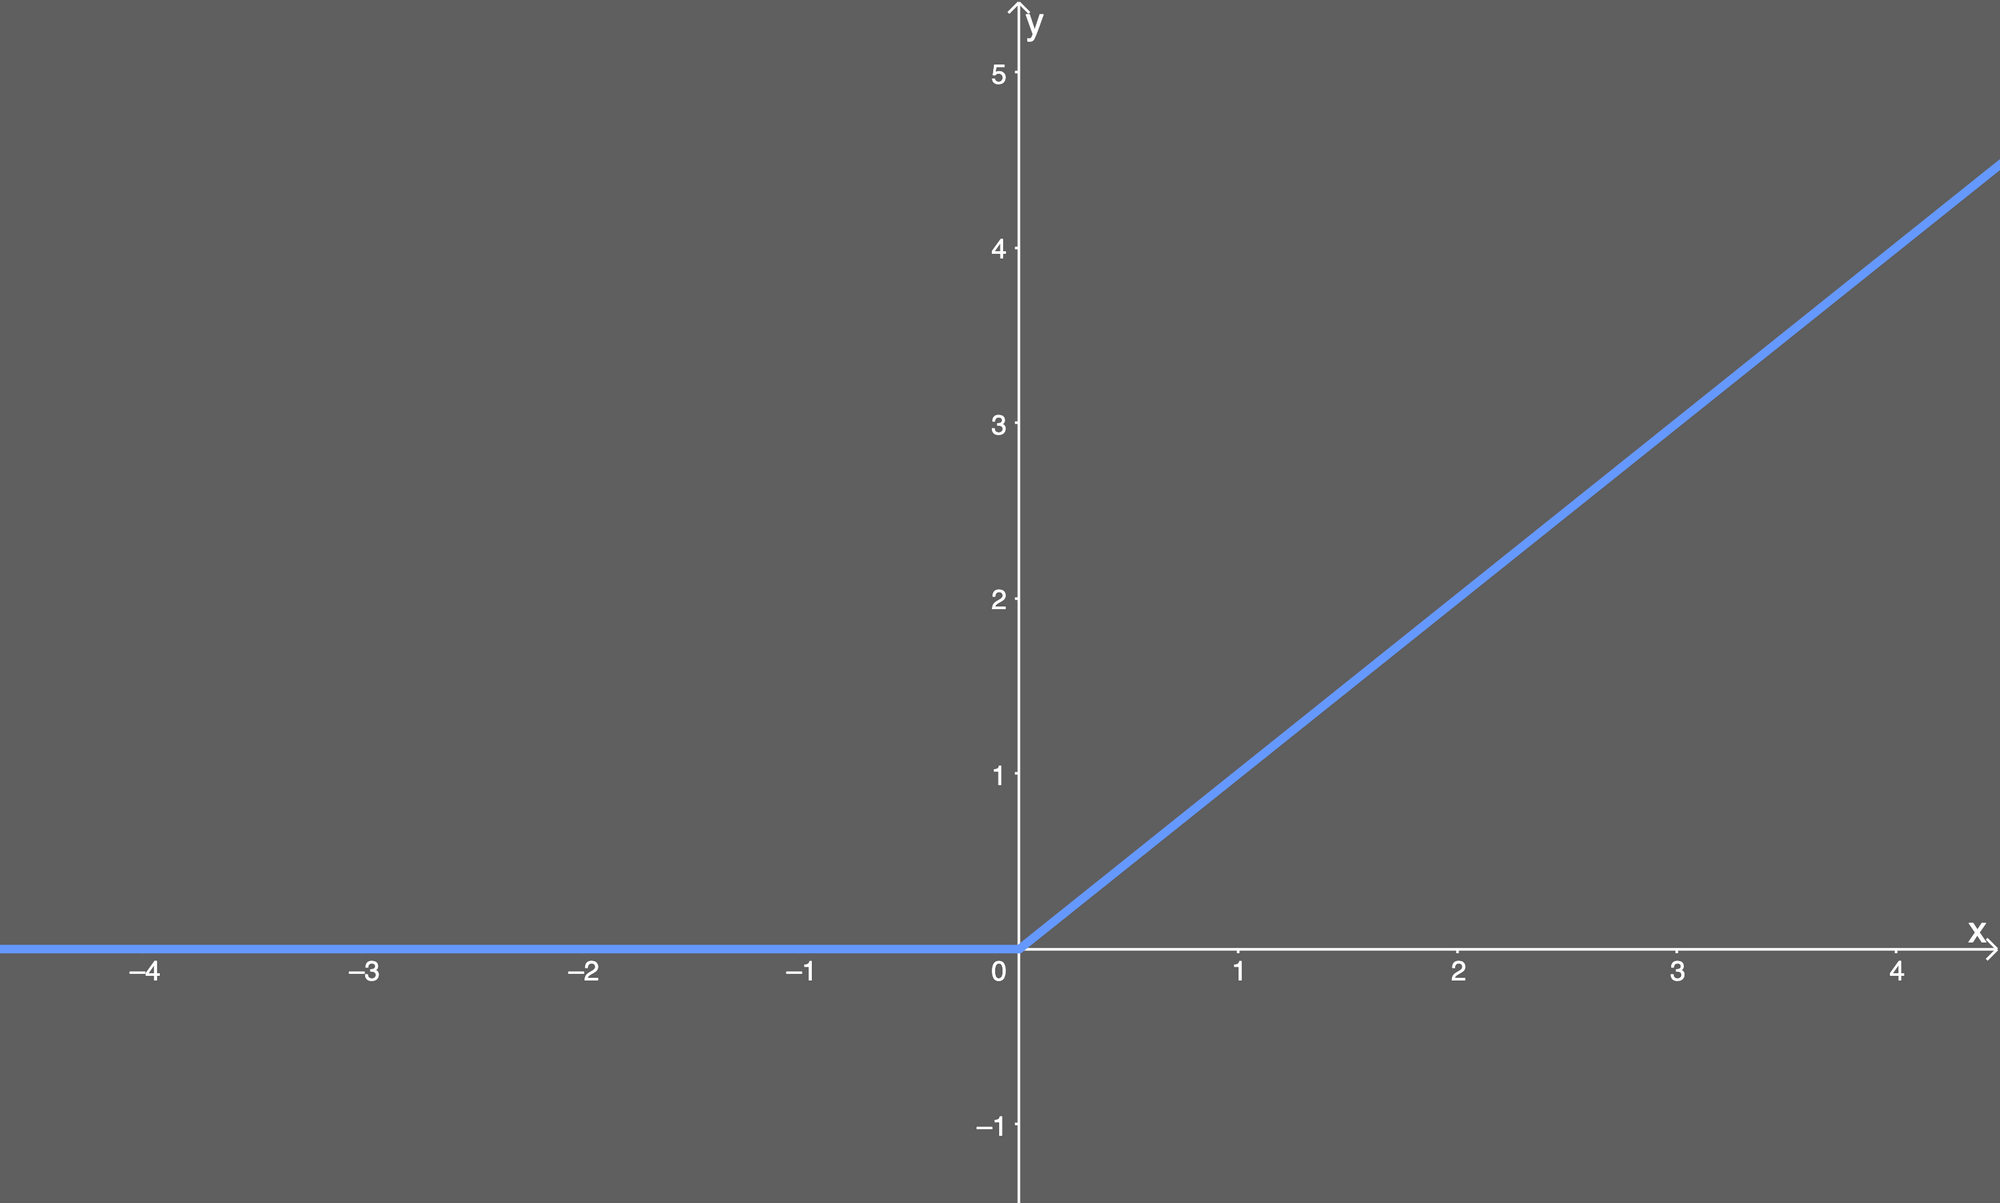 relu activation function plotted